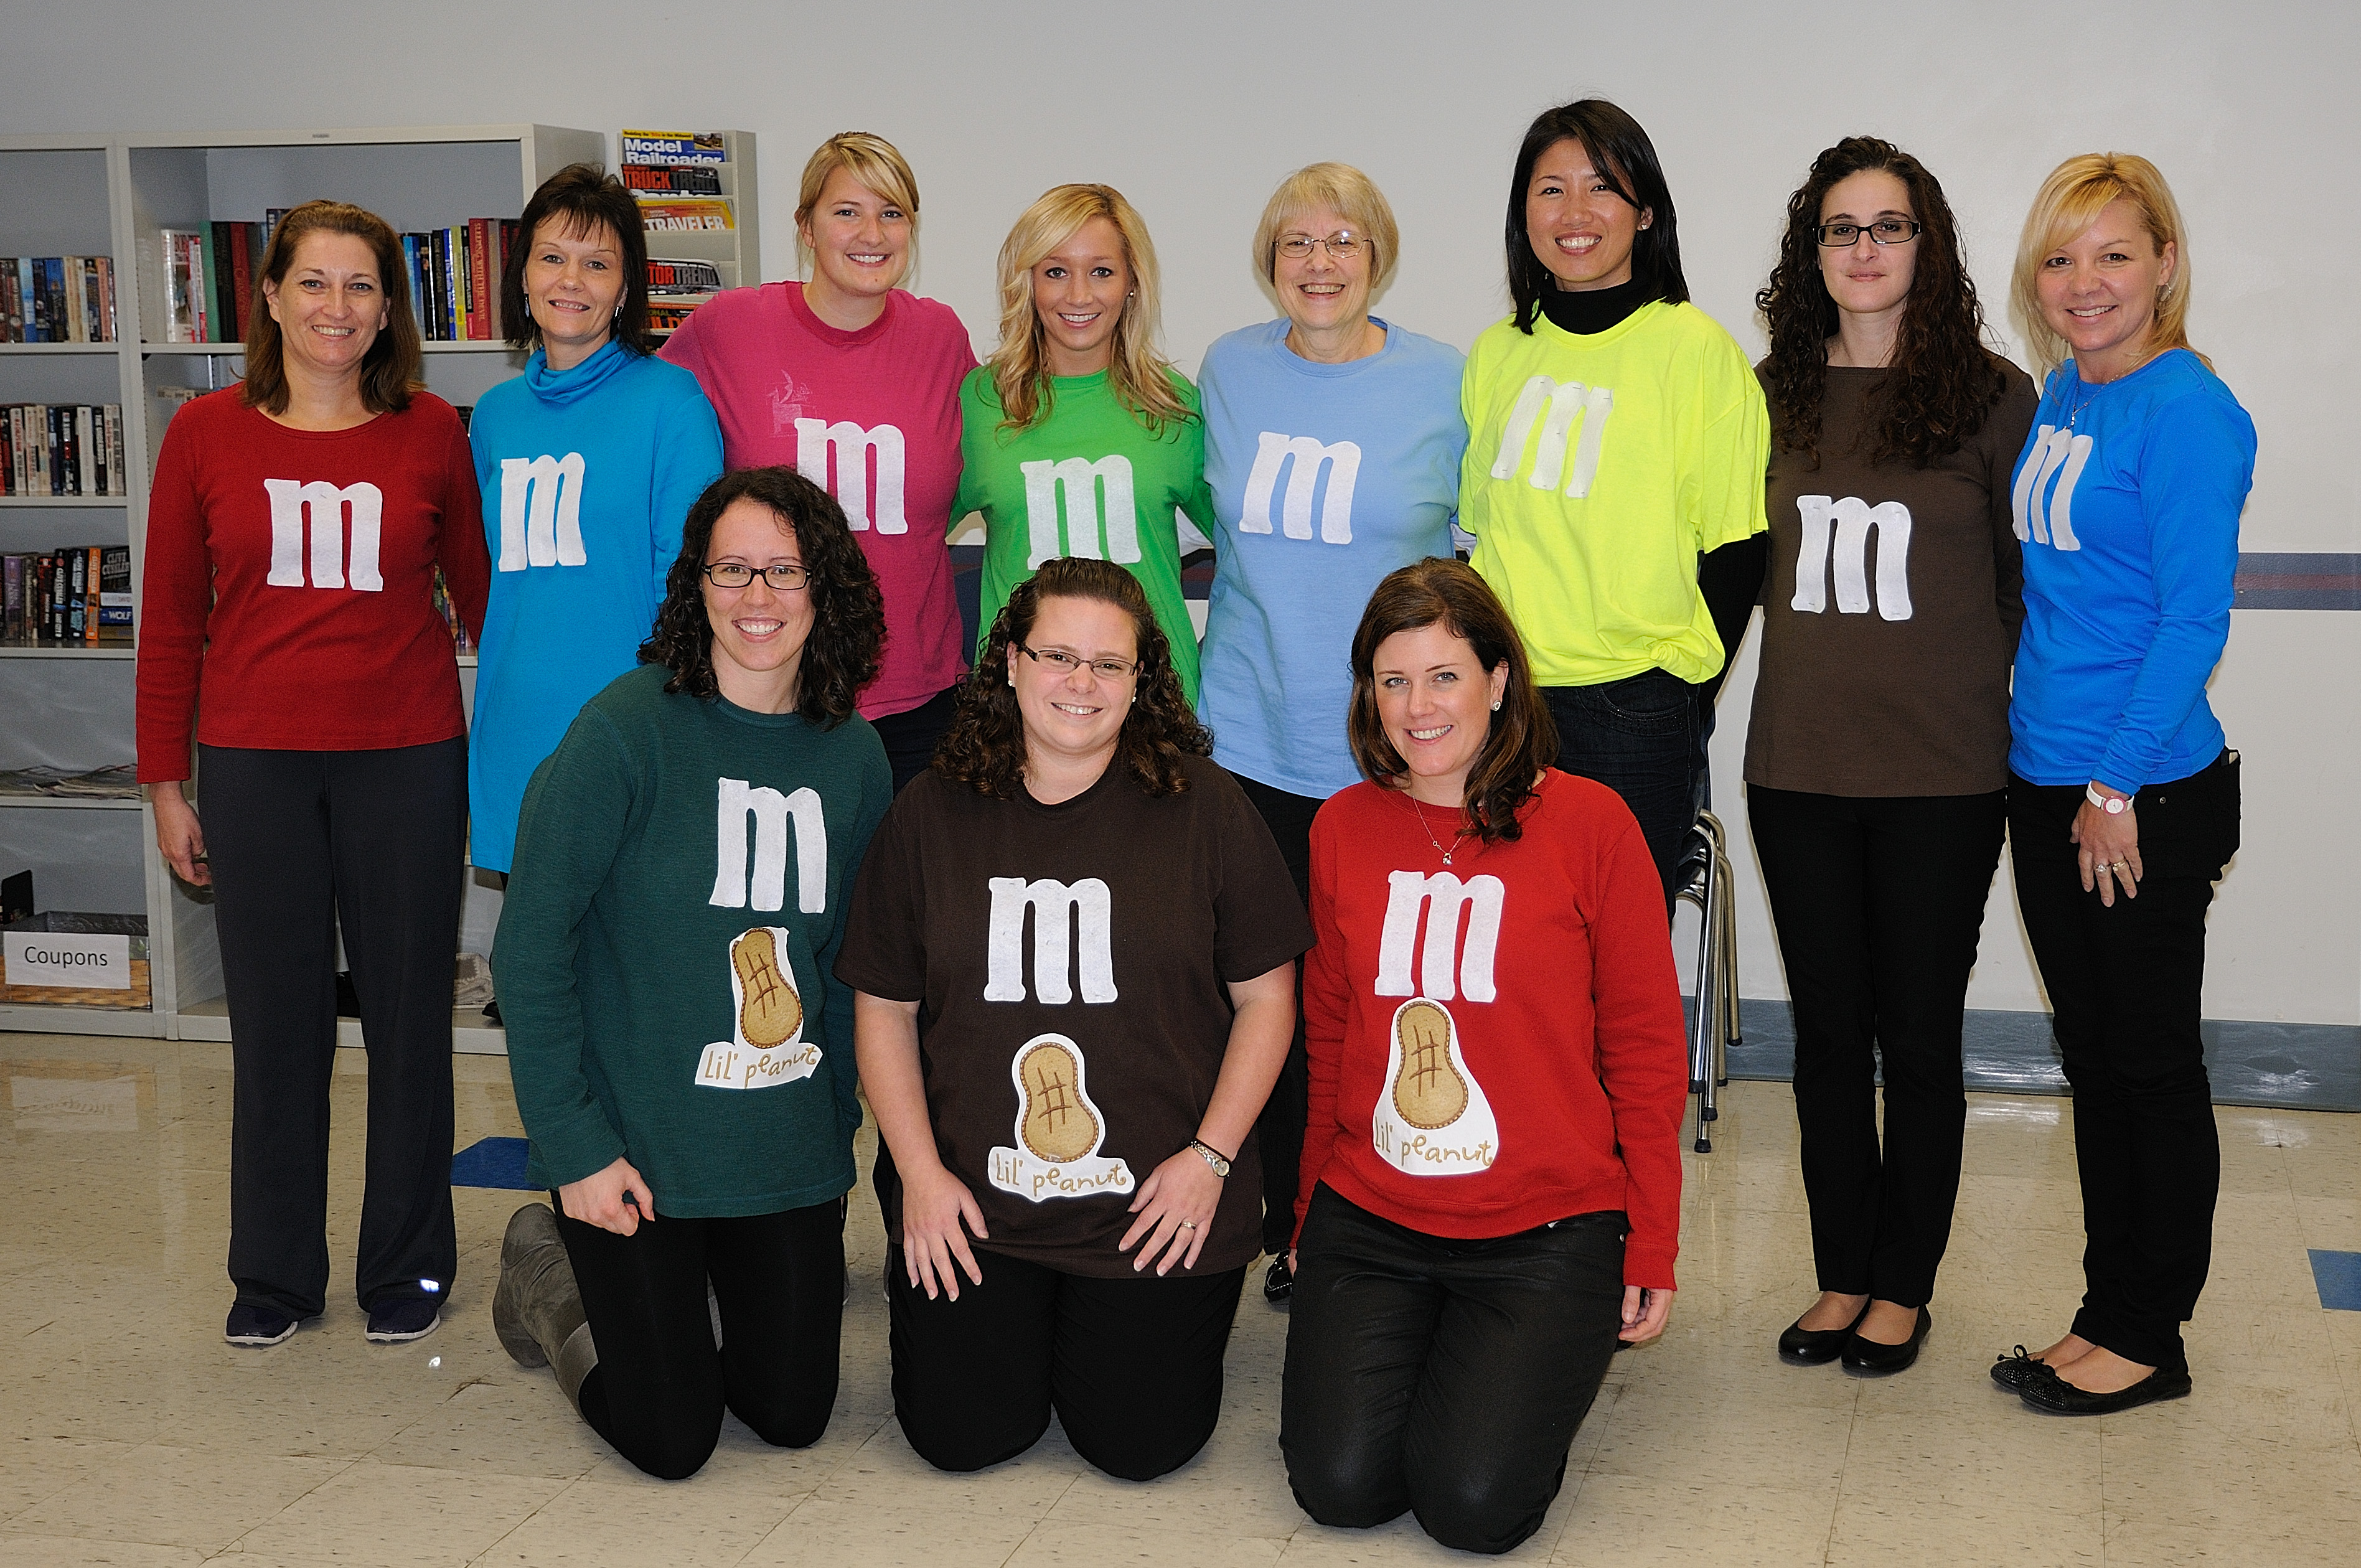 Halloween Costume Theme Ideas For Office.Simple Office Halloween Costume Ideas Best Halloween Themes Party